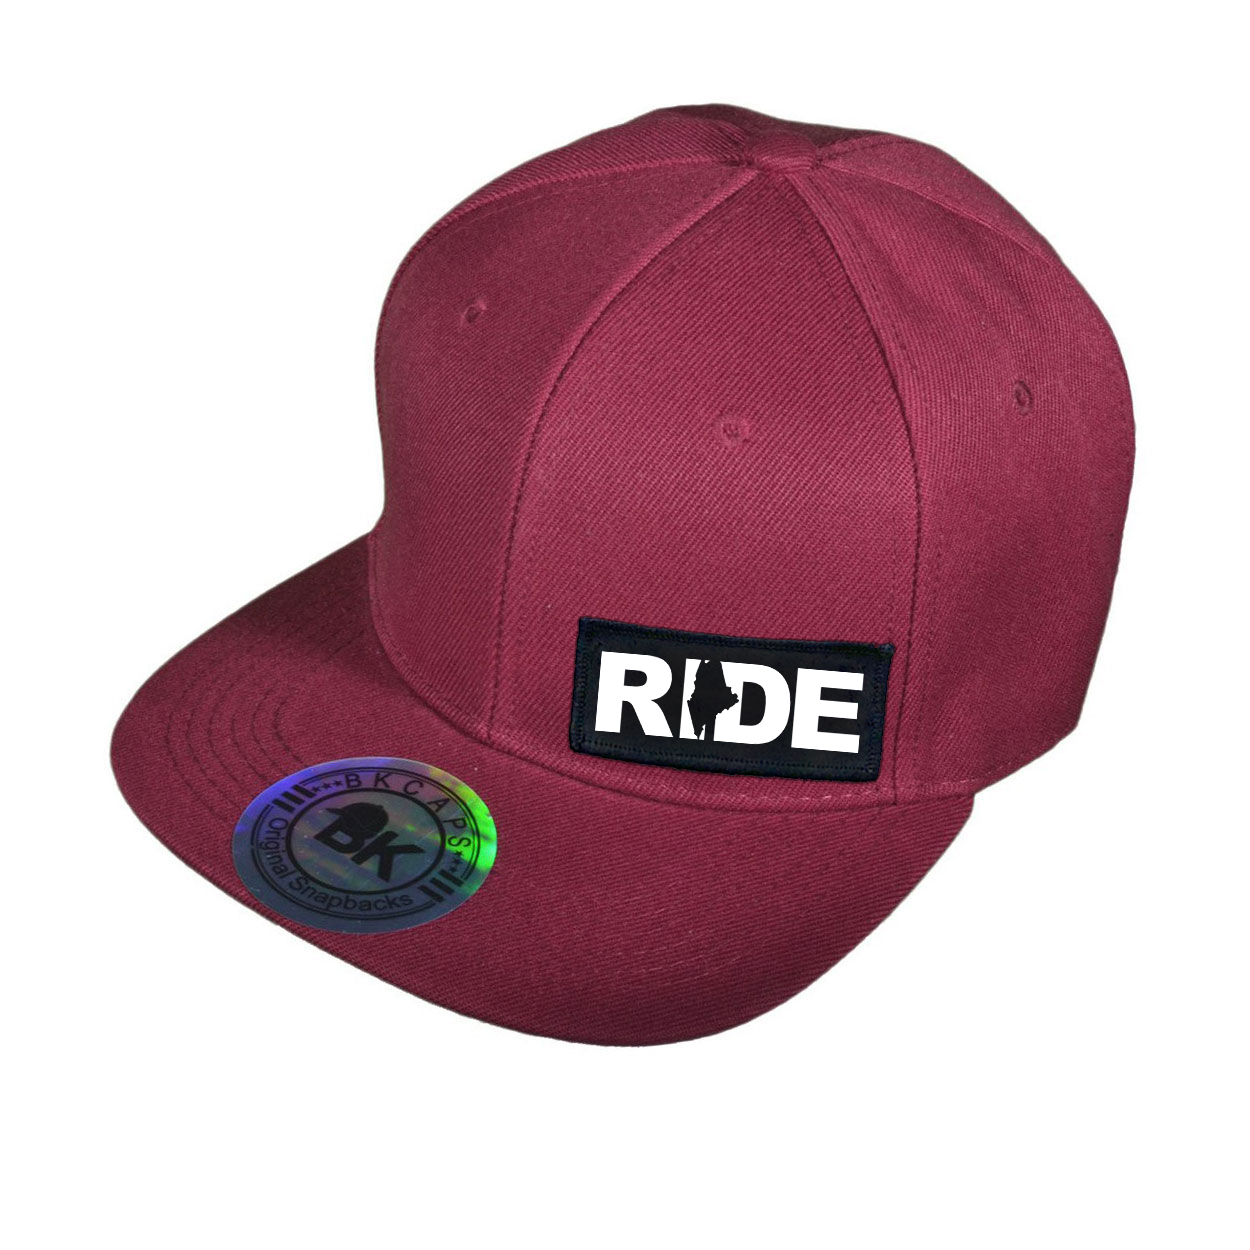 Ride Maine Night Out Woven Patch Snapback Flat Brim Hat Burgundy (White Logo)